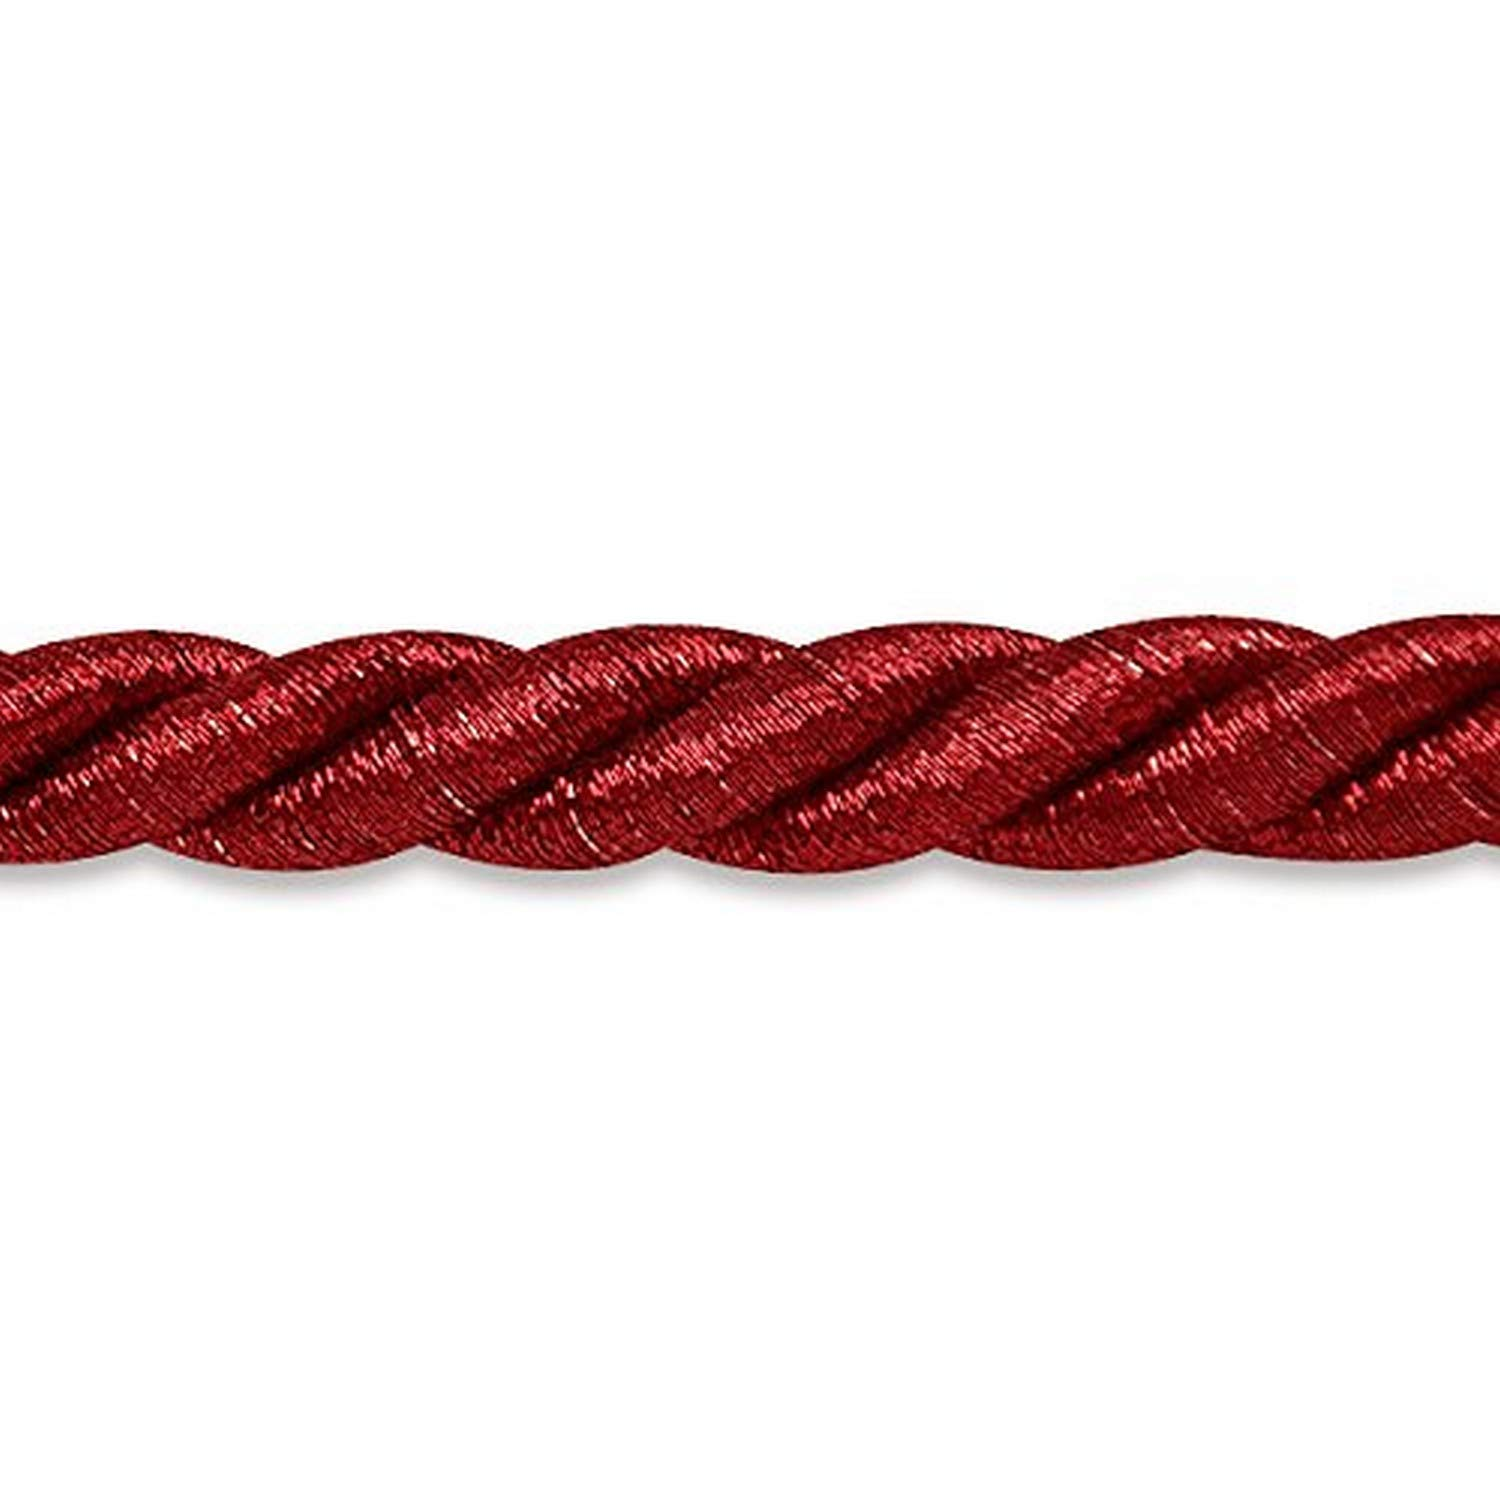 20-Yard Metallic Chocolate Expo International 3//8-Inch Holly Twisted Cord Trim Embellishment